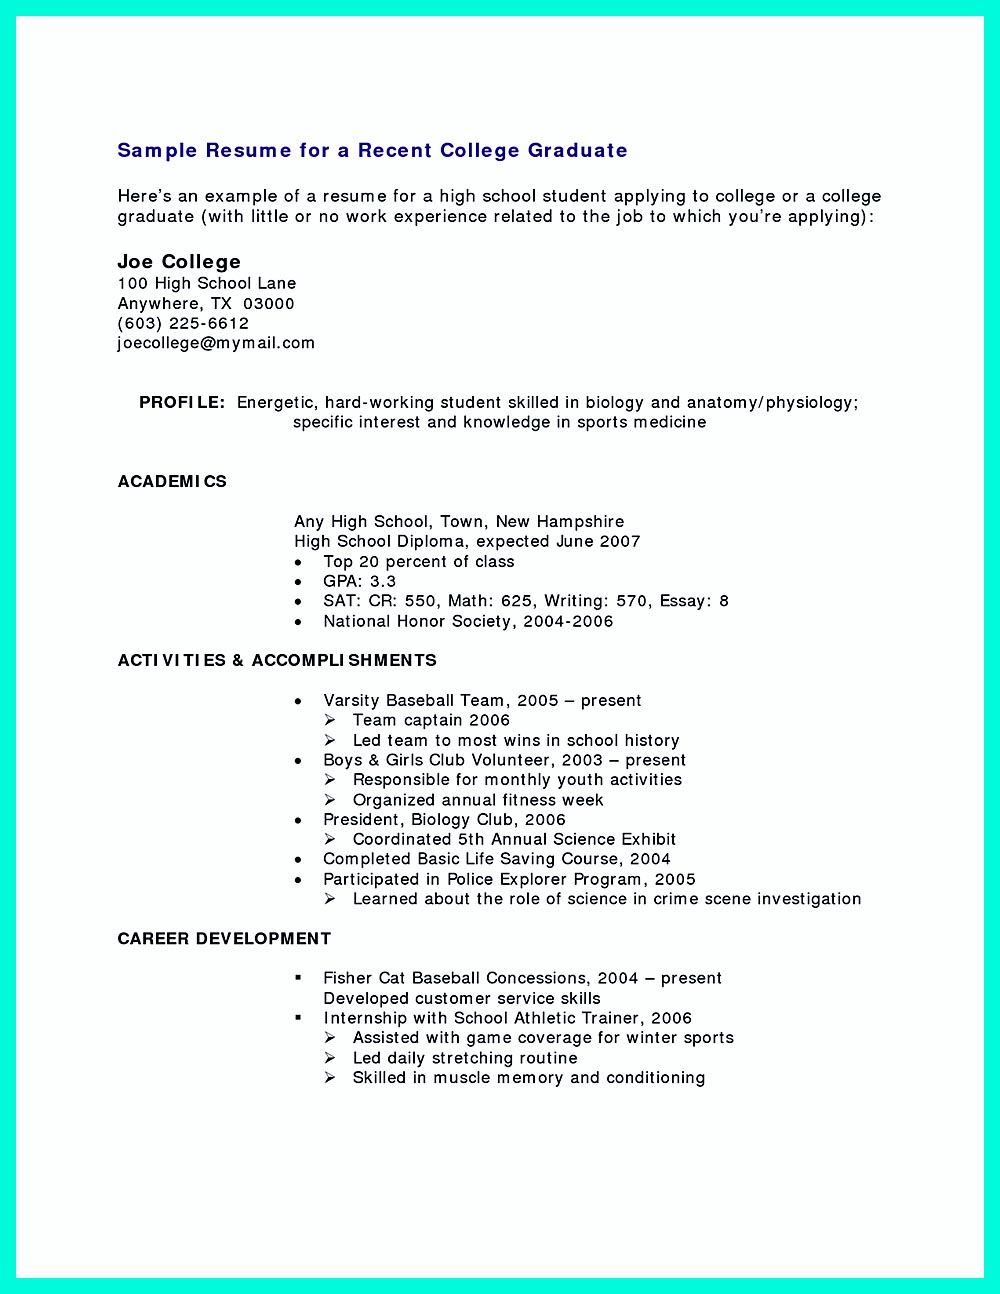 Student Affairs Resume College Graduate Resume Is Neededif You Think Resume Is Not